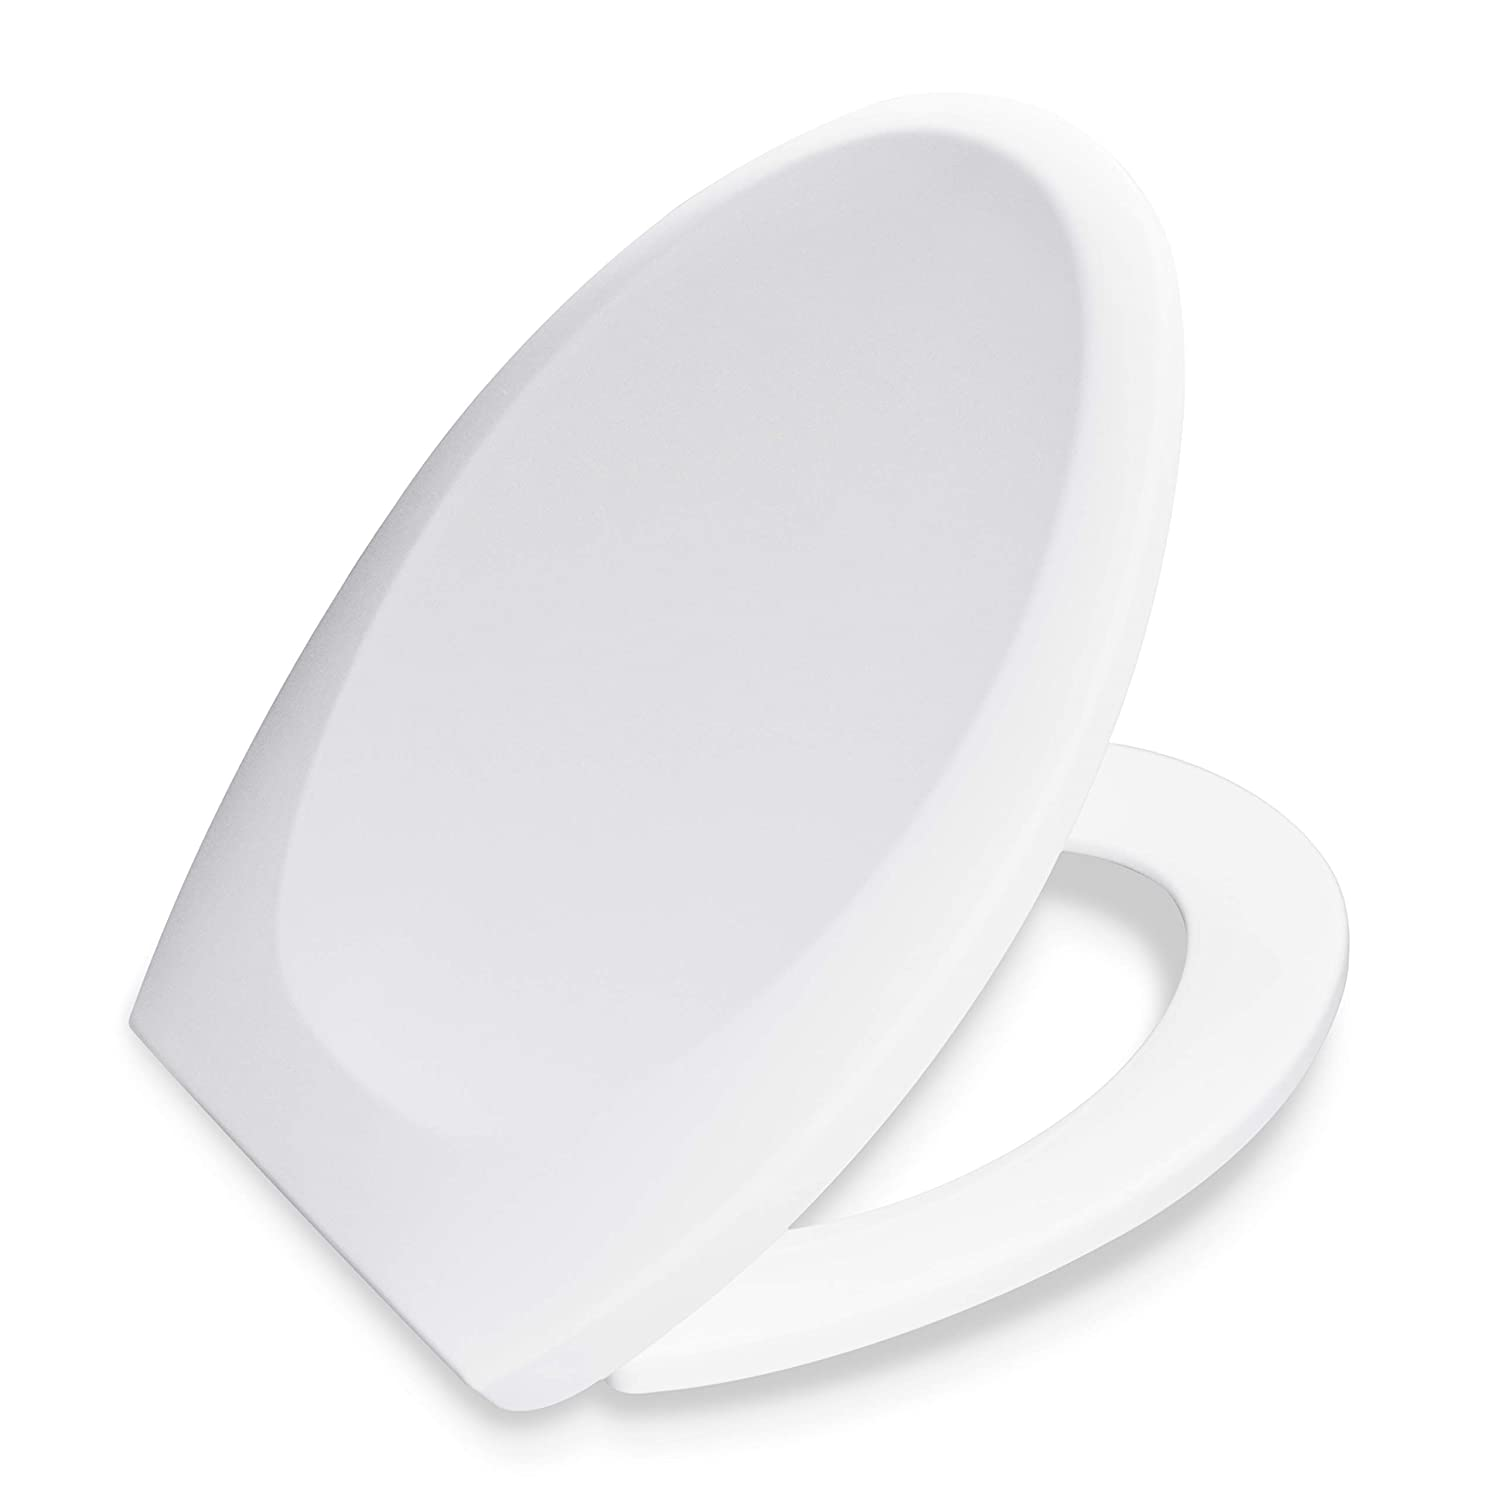 Bath Royale Premium Elongated Toilet Seat with Cover, White, Slow-Close, Quick-Release for Easy Cleaning. Fits All Elongated (Oval) Toilets